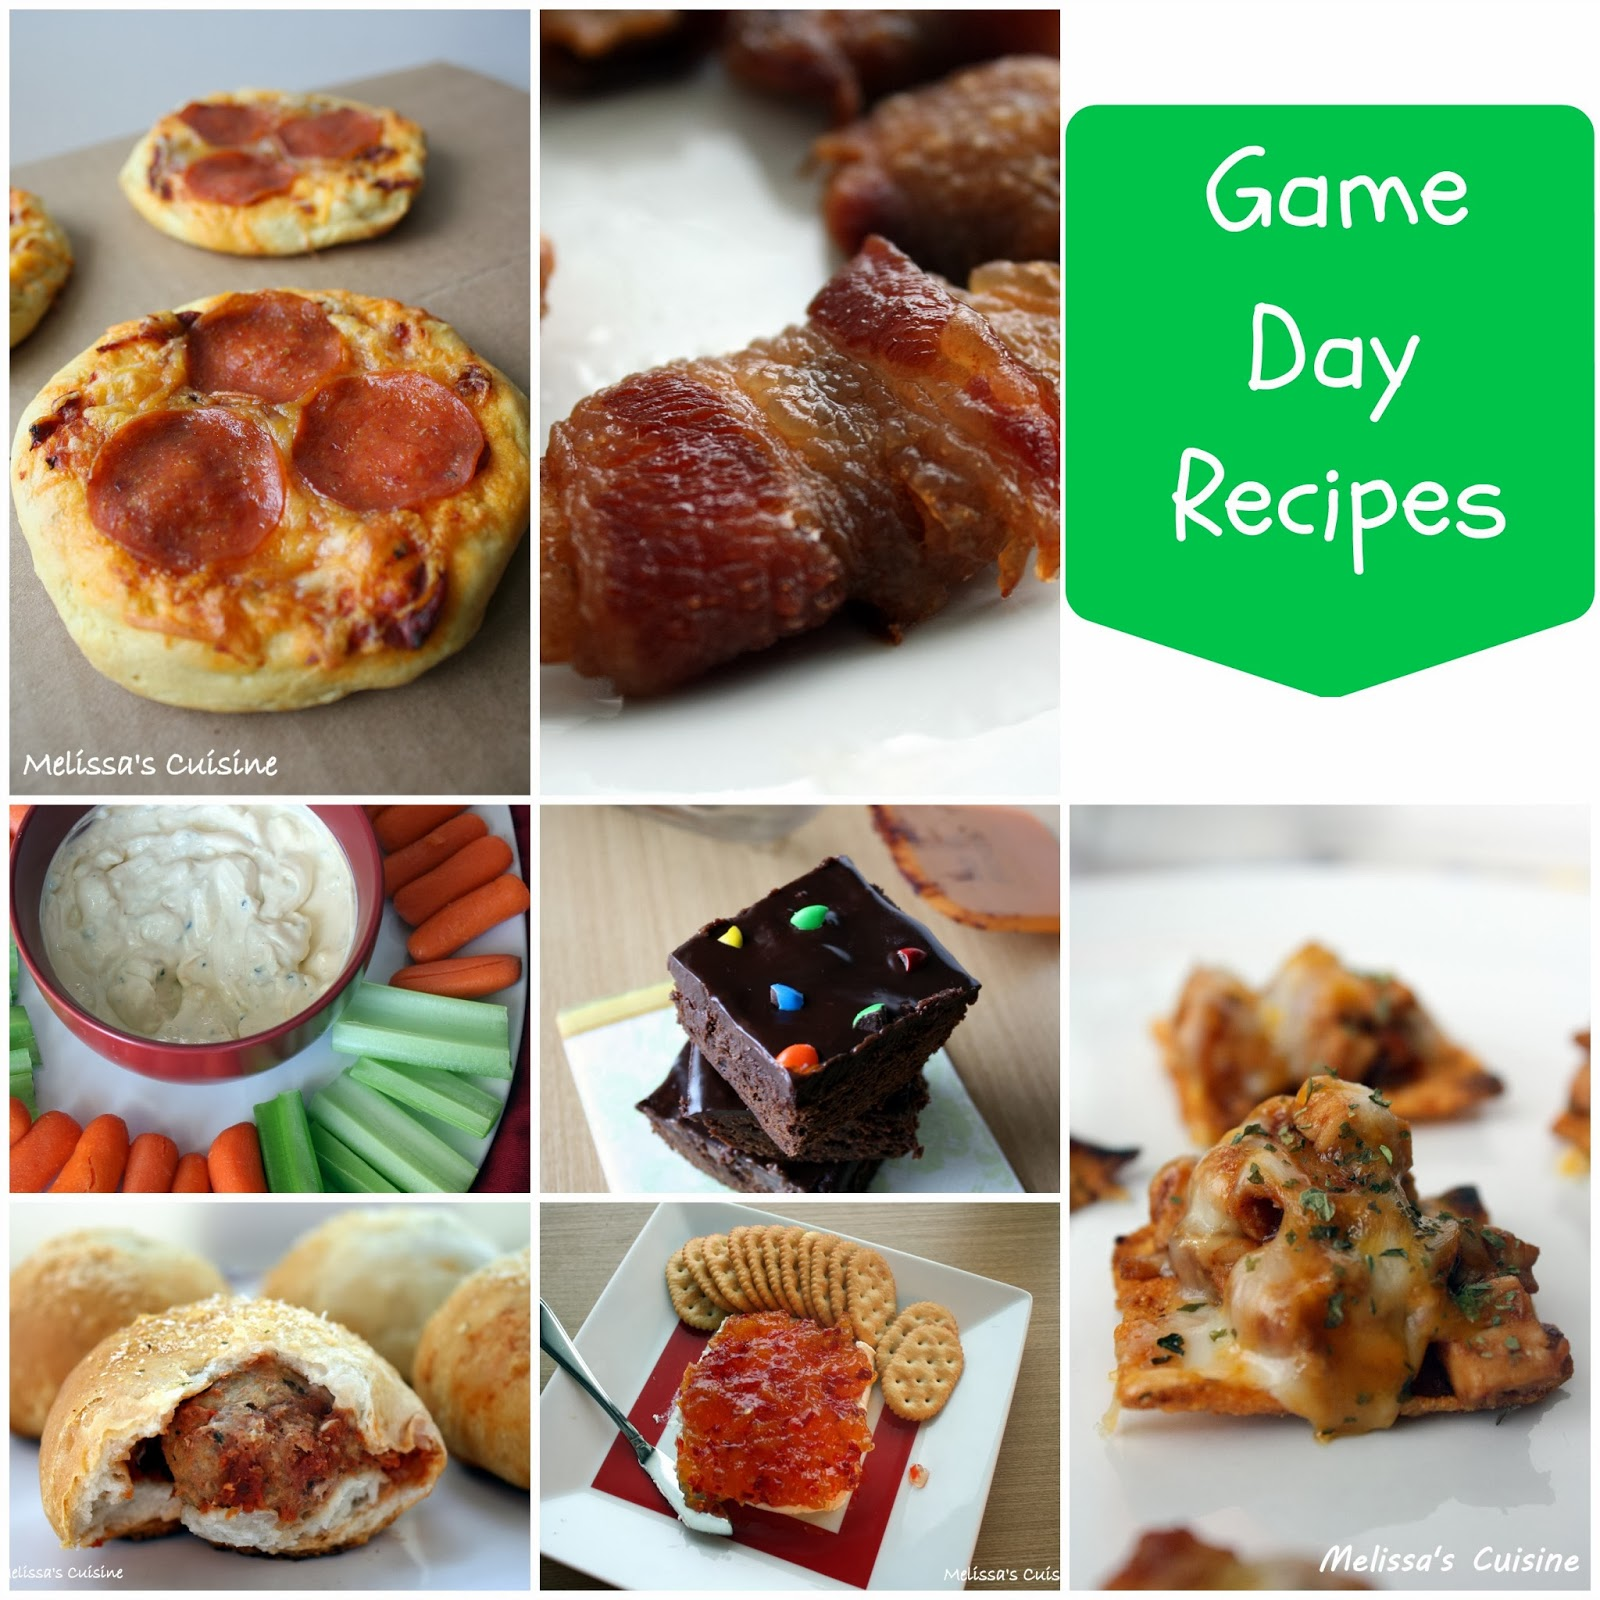 Melissa's Cuisine: Game Day Recipes